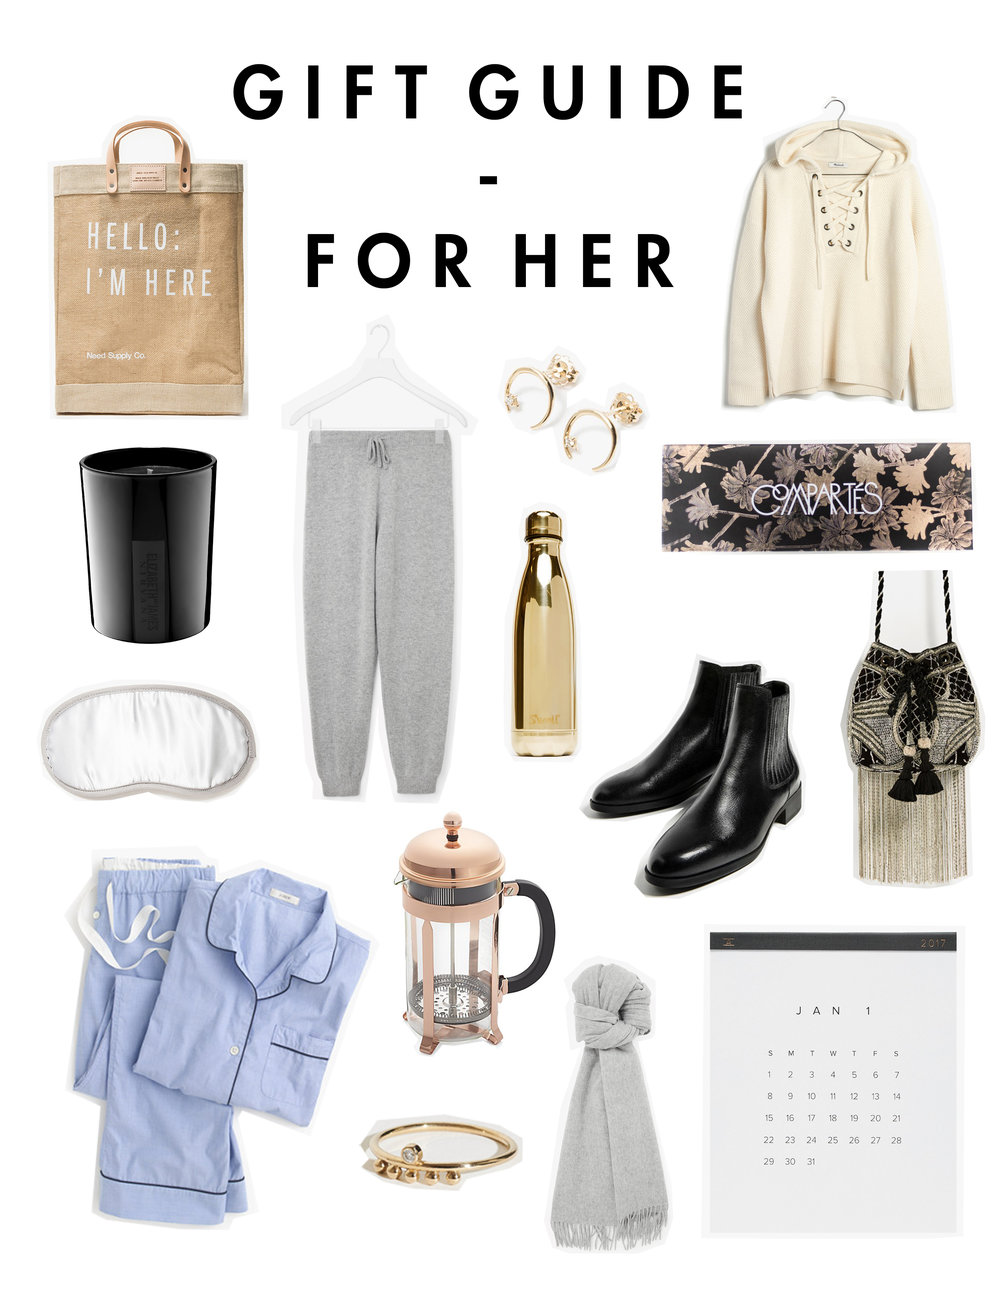 caitlin_miyako_taylor_gift_guide_for_her_2016